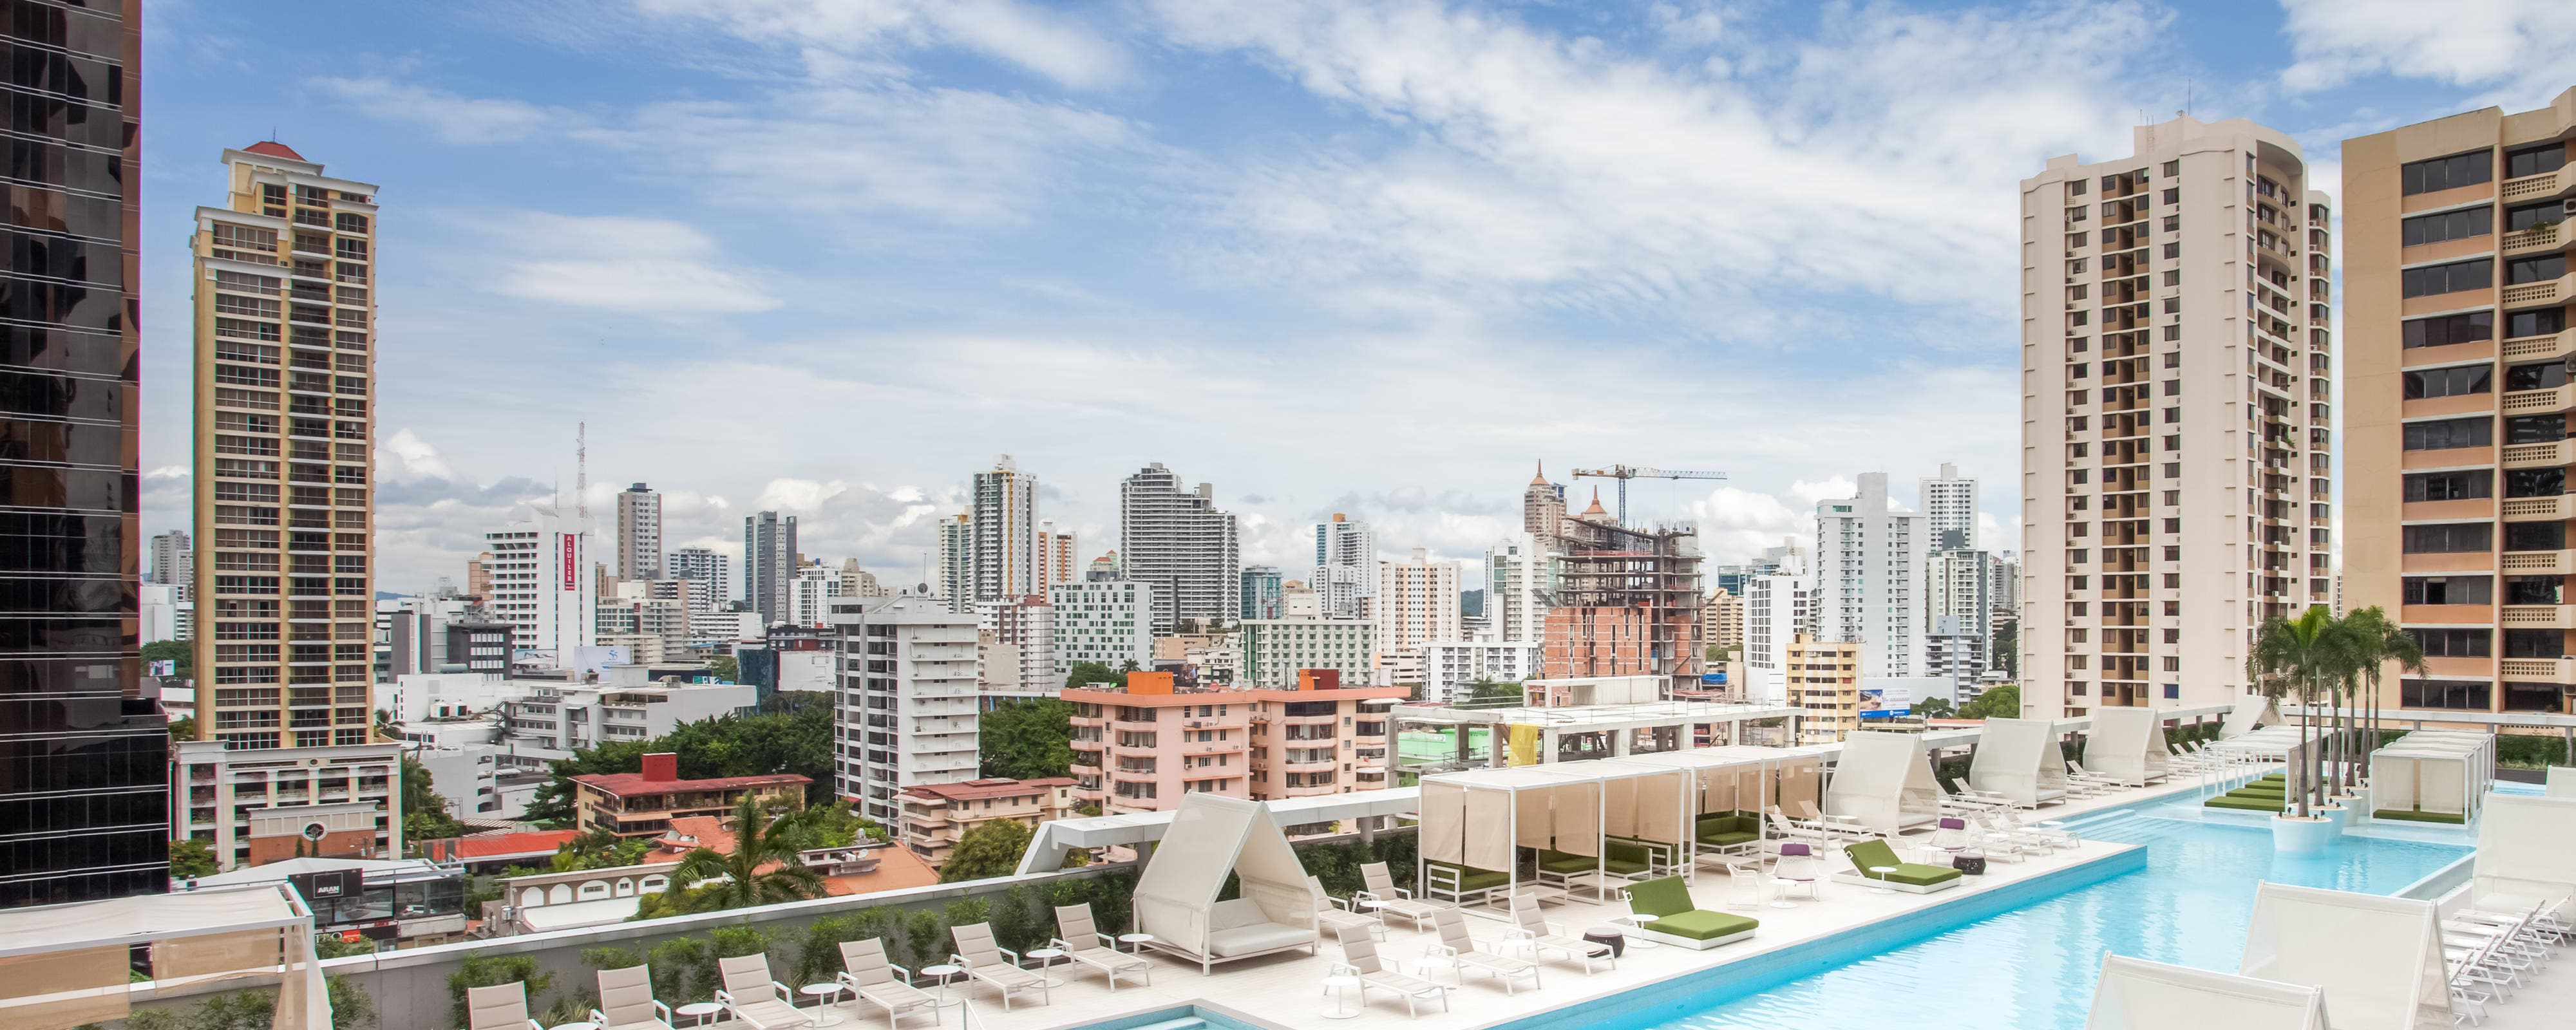 Hotel mit Pool in Panama City